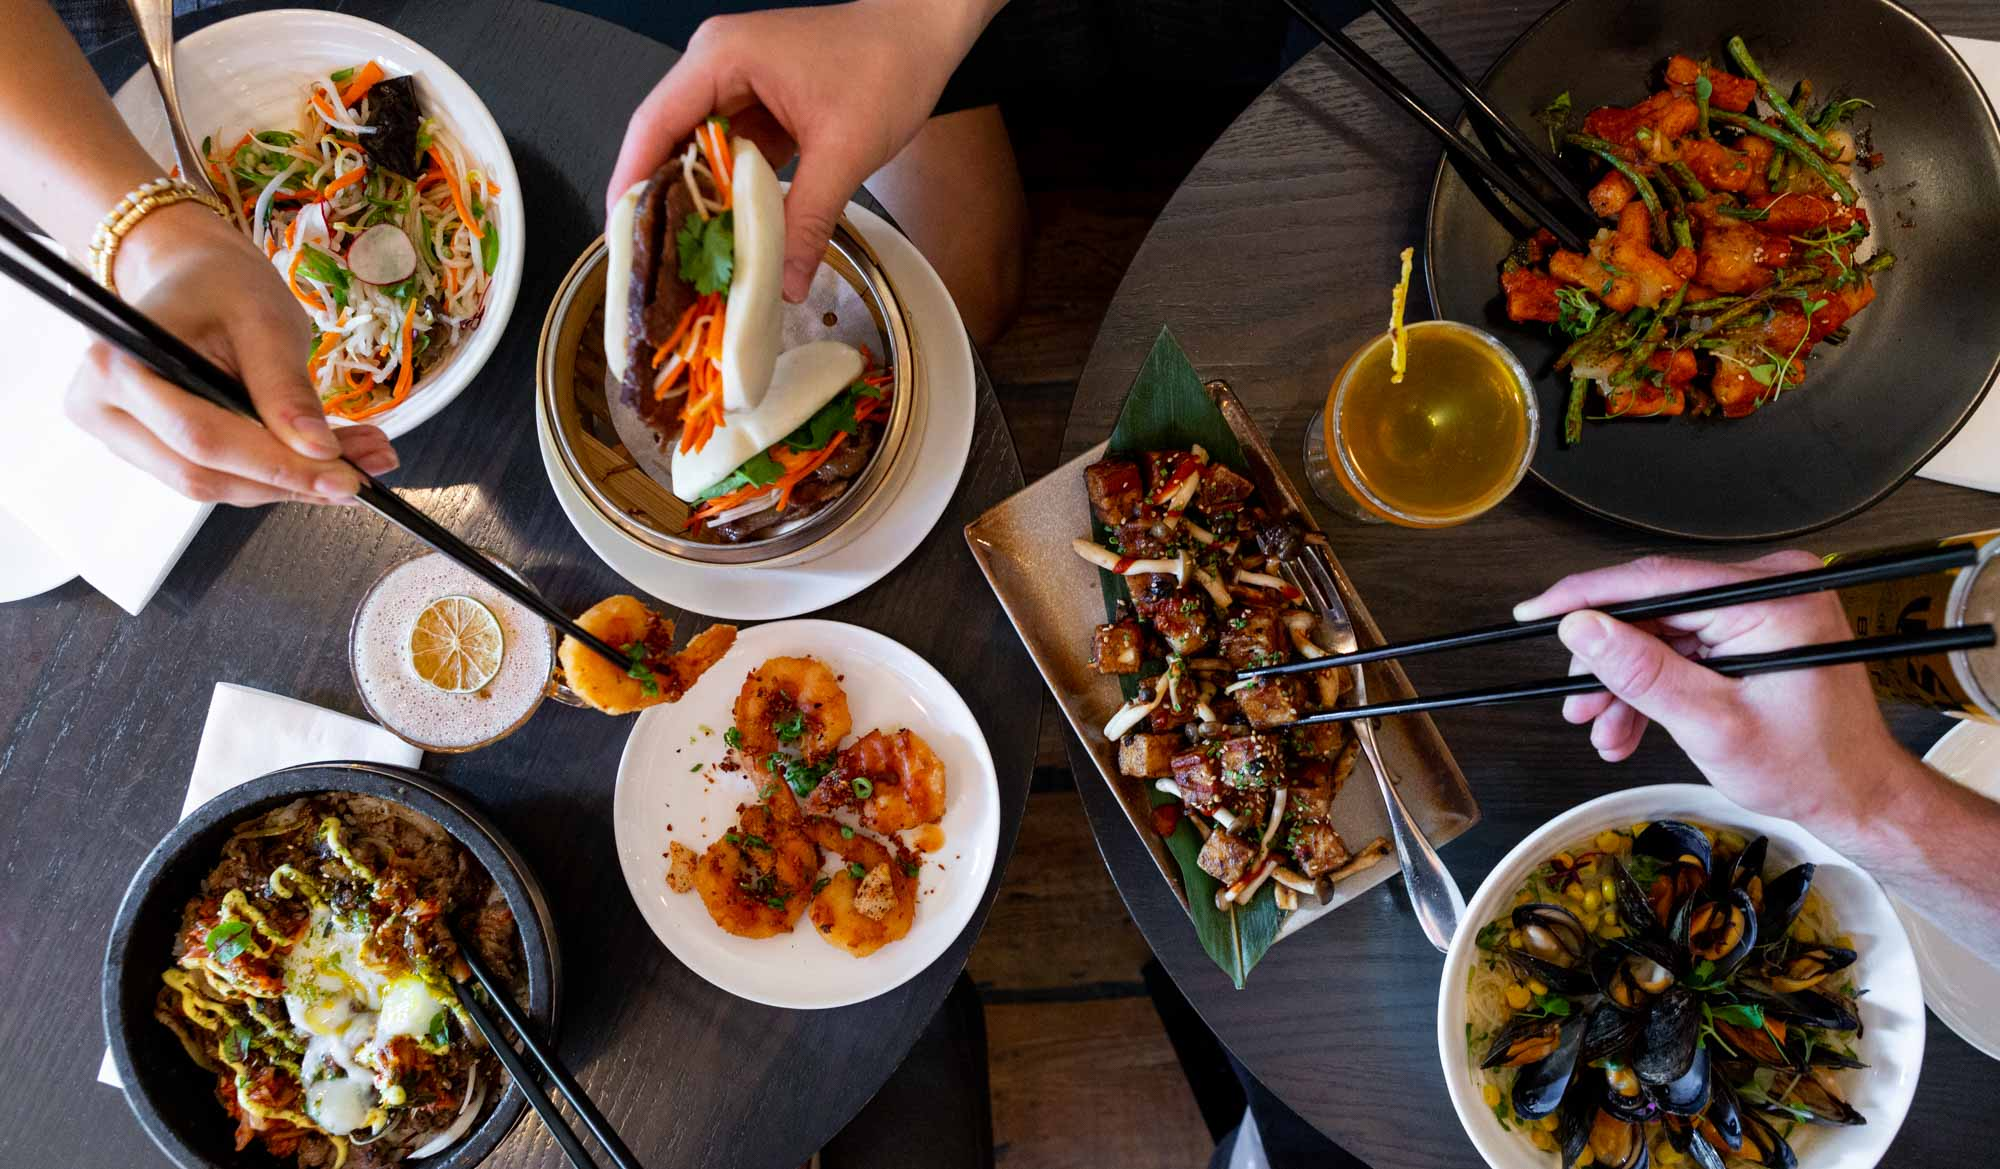 Summerlicious R&D two tables filled with Asian Canadian dishes with multiple diners and chopsticks